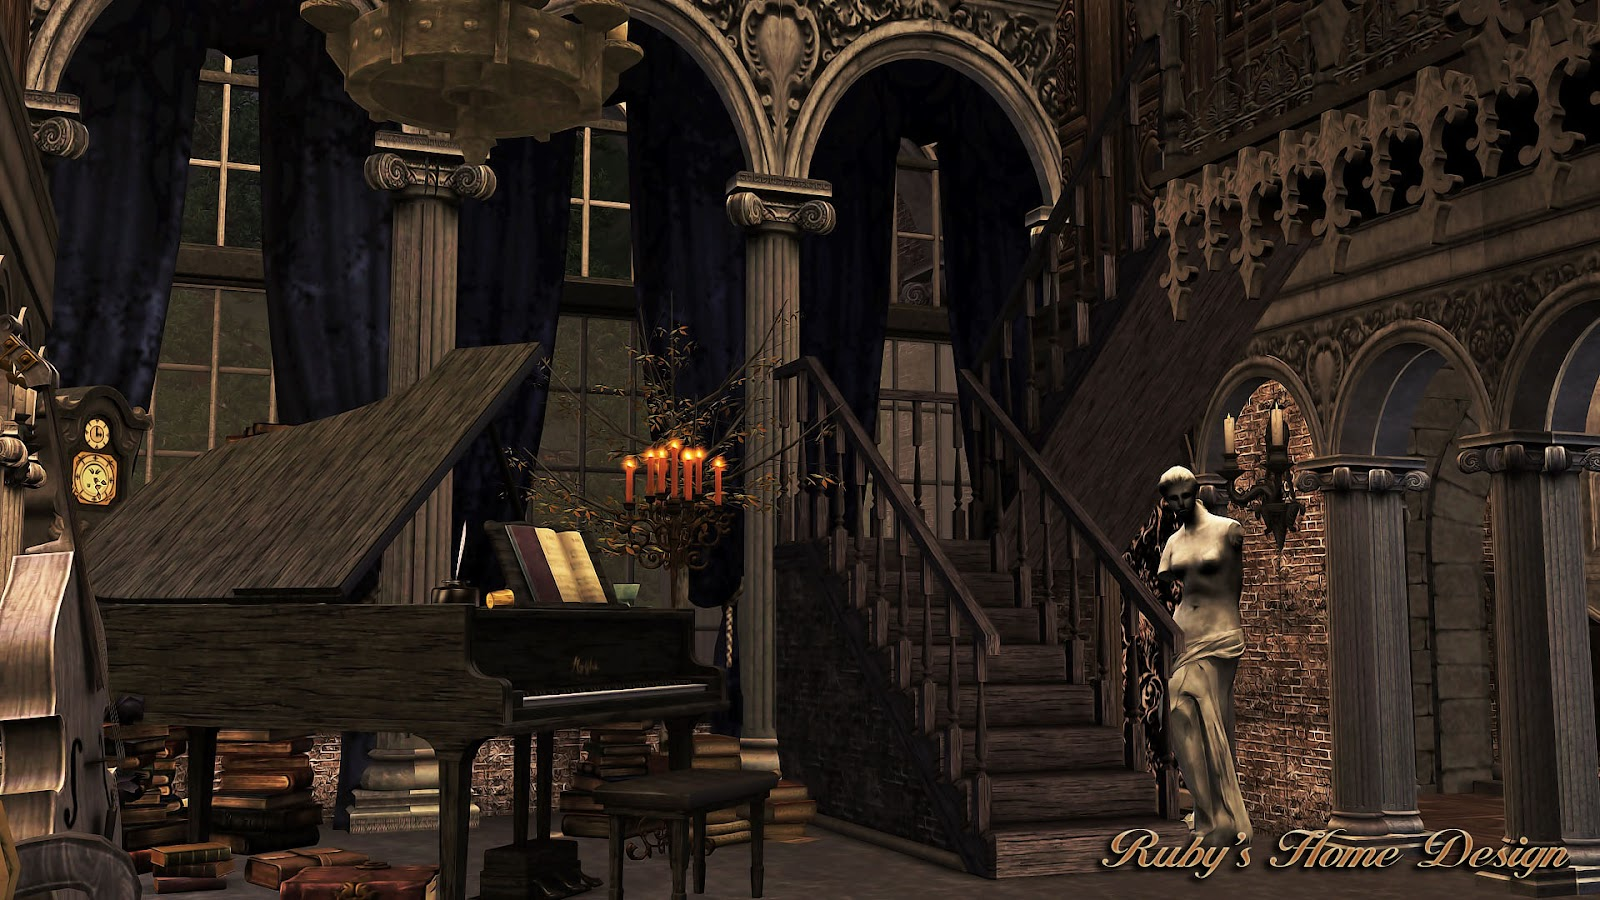 Portfolio page pheasant House livdin Room buffet in addition Sims3 Gothic Mansion in addition Canvas Paintings likewise Pallet Wall Decor 2 together with Caramel Flan Individual Servings 2343004. on house room painting